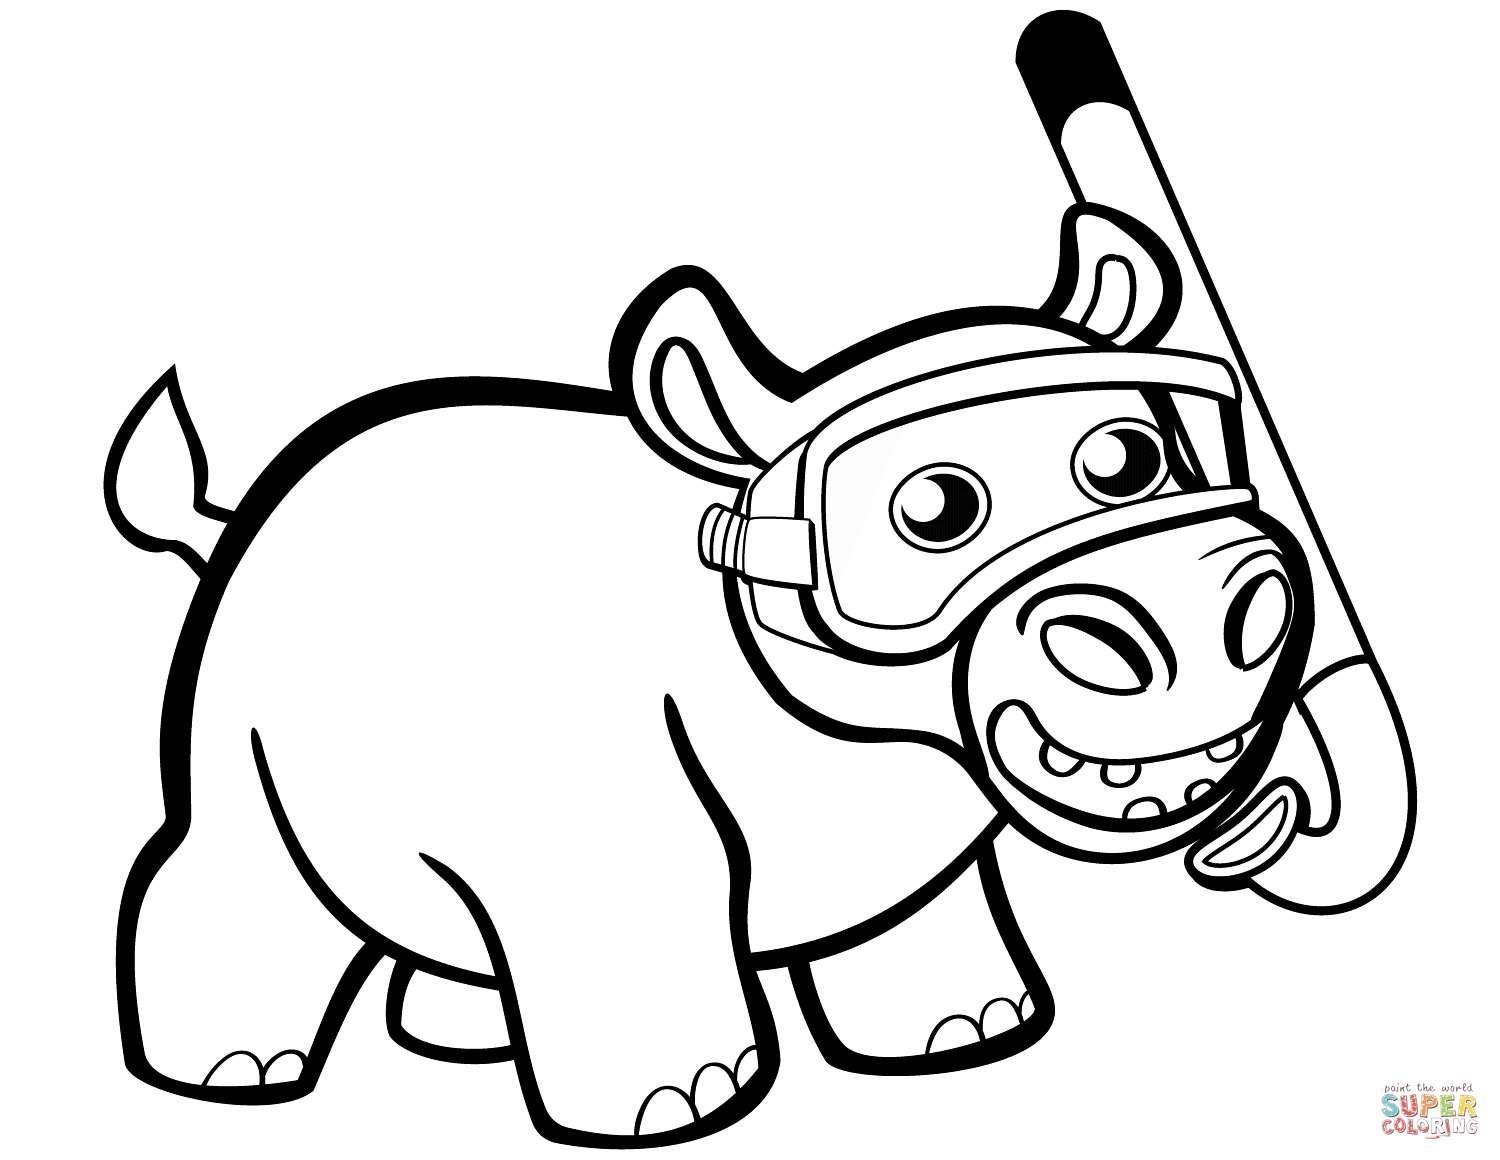 coloring hippo clipart cartoon hippo drawing at getdrawings free download hippo coloring clipart